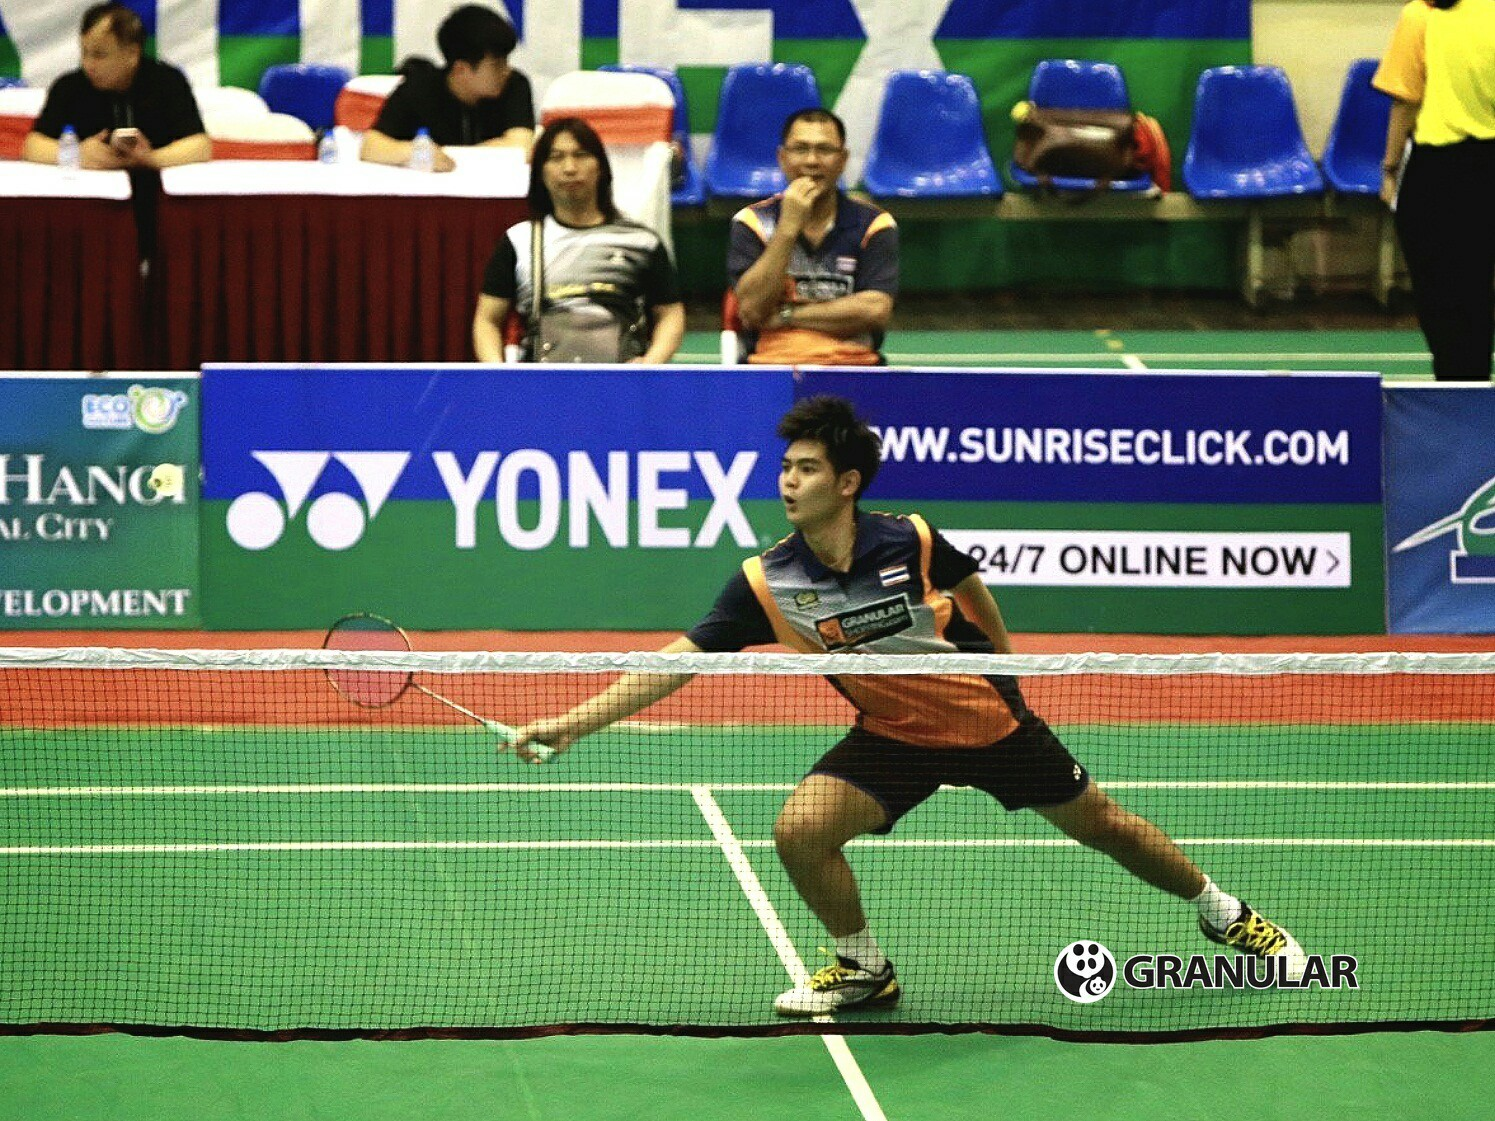 CIPUTRA HANOI - YONEX SUNRISE Vietnam International Challenge 2017 (1) รูปภาพกีฬาแบดมินตัน